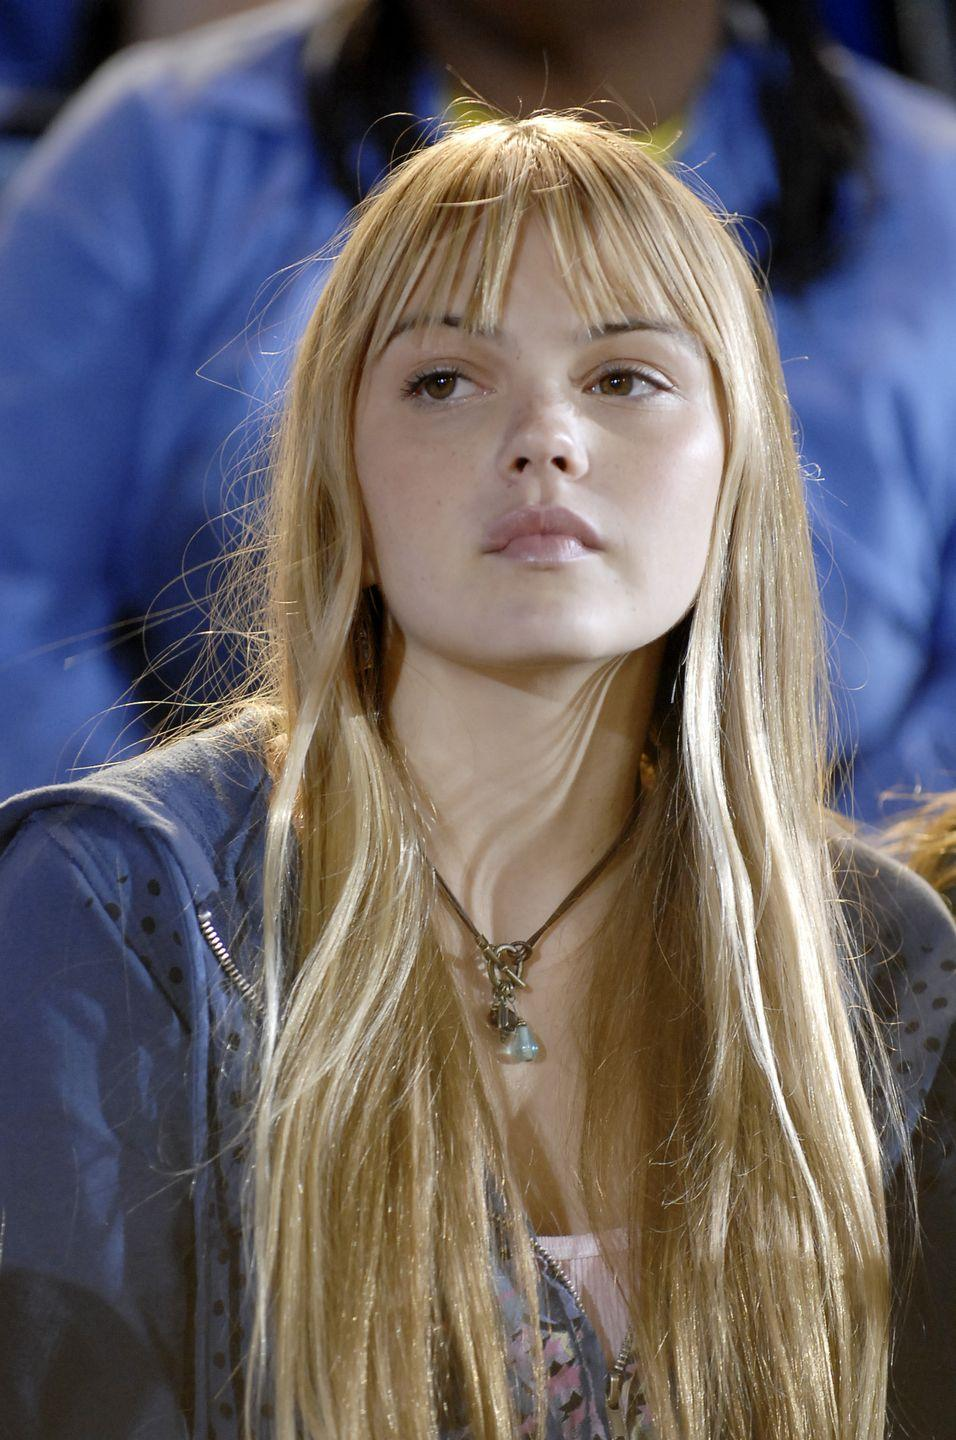 <p>As the coach's daughter, Julie Taylor was the typical small-town teenager who drove her parents crazy. She was also the girlfriend of QB Matt Saracen. </p><p>When the first season of <em>FNL</em> premiered, Aimee Teegarden was a relatively unknown actress with few credits to her name, which included a cameo on Disney Channel's<em> Hannah Montana </em>that same year.</p>